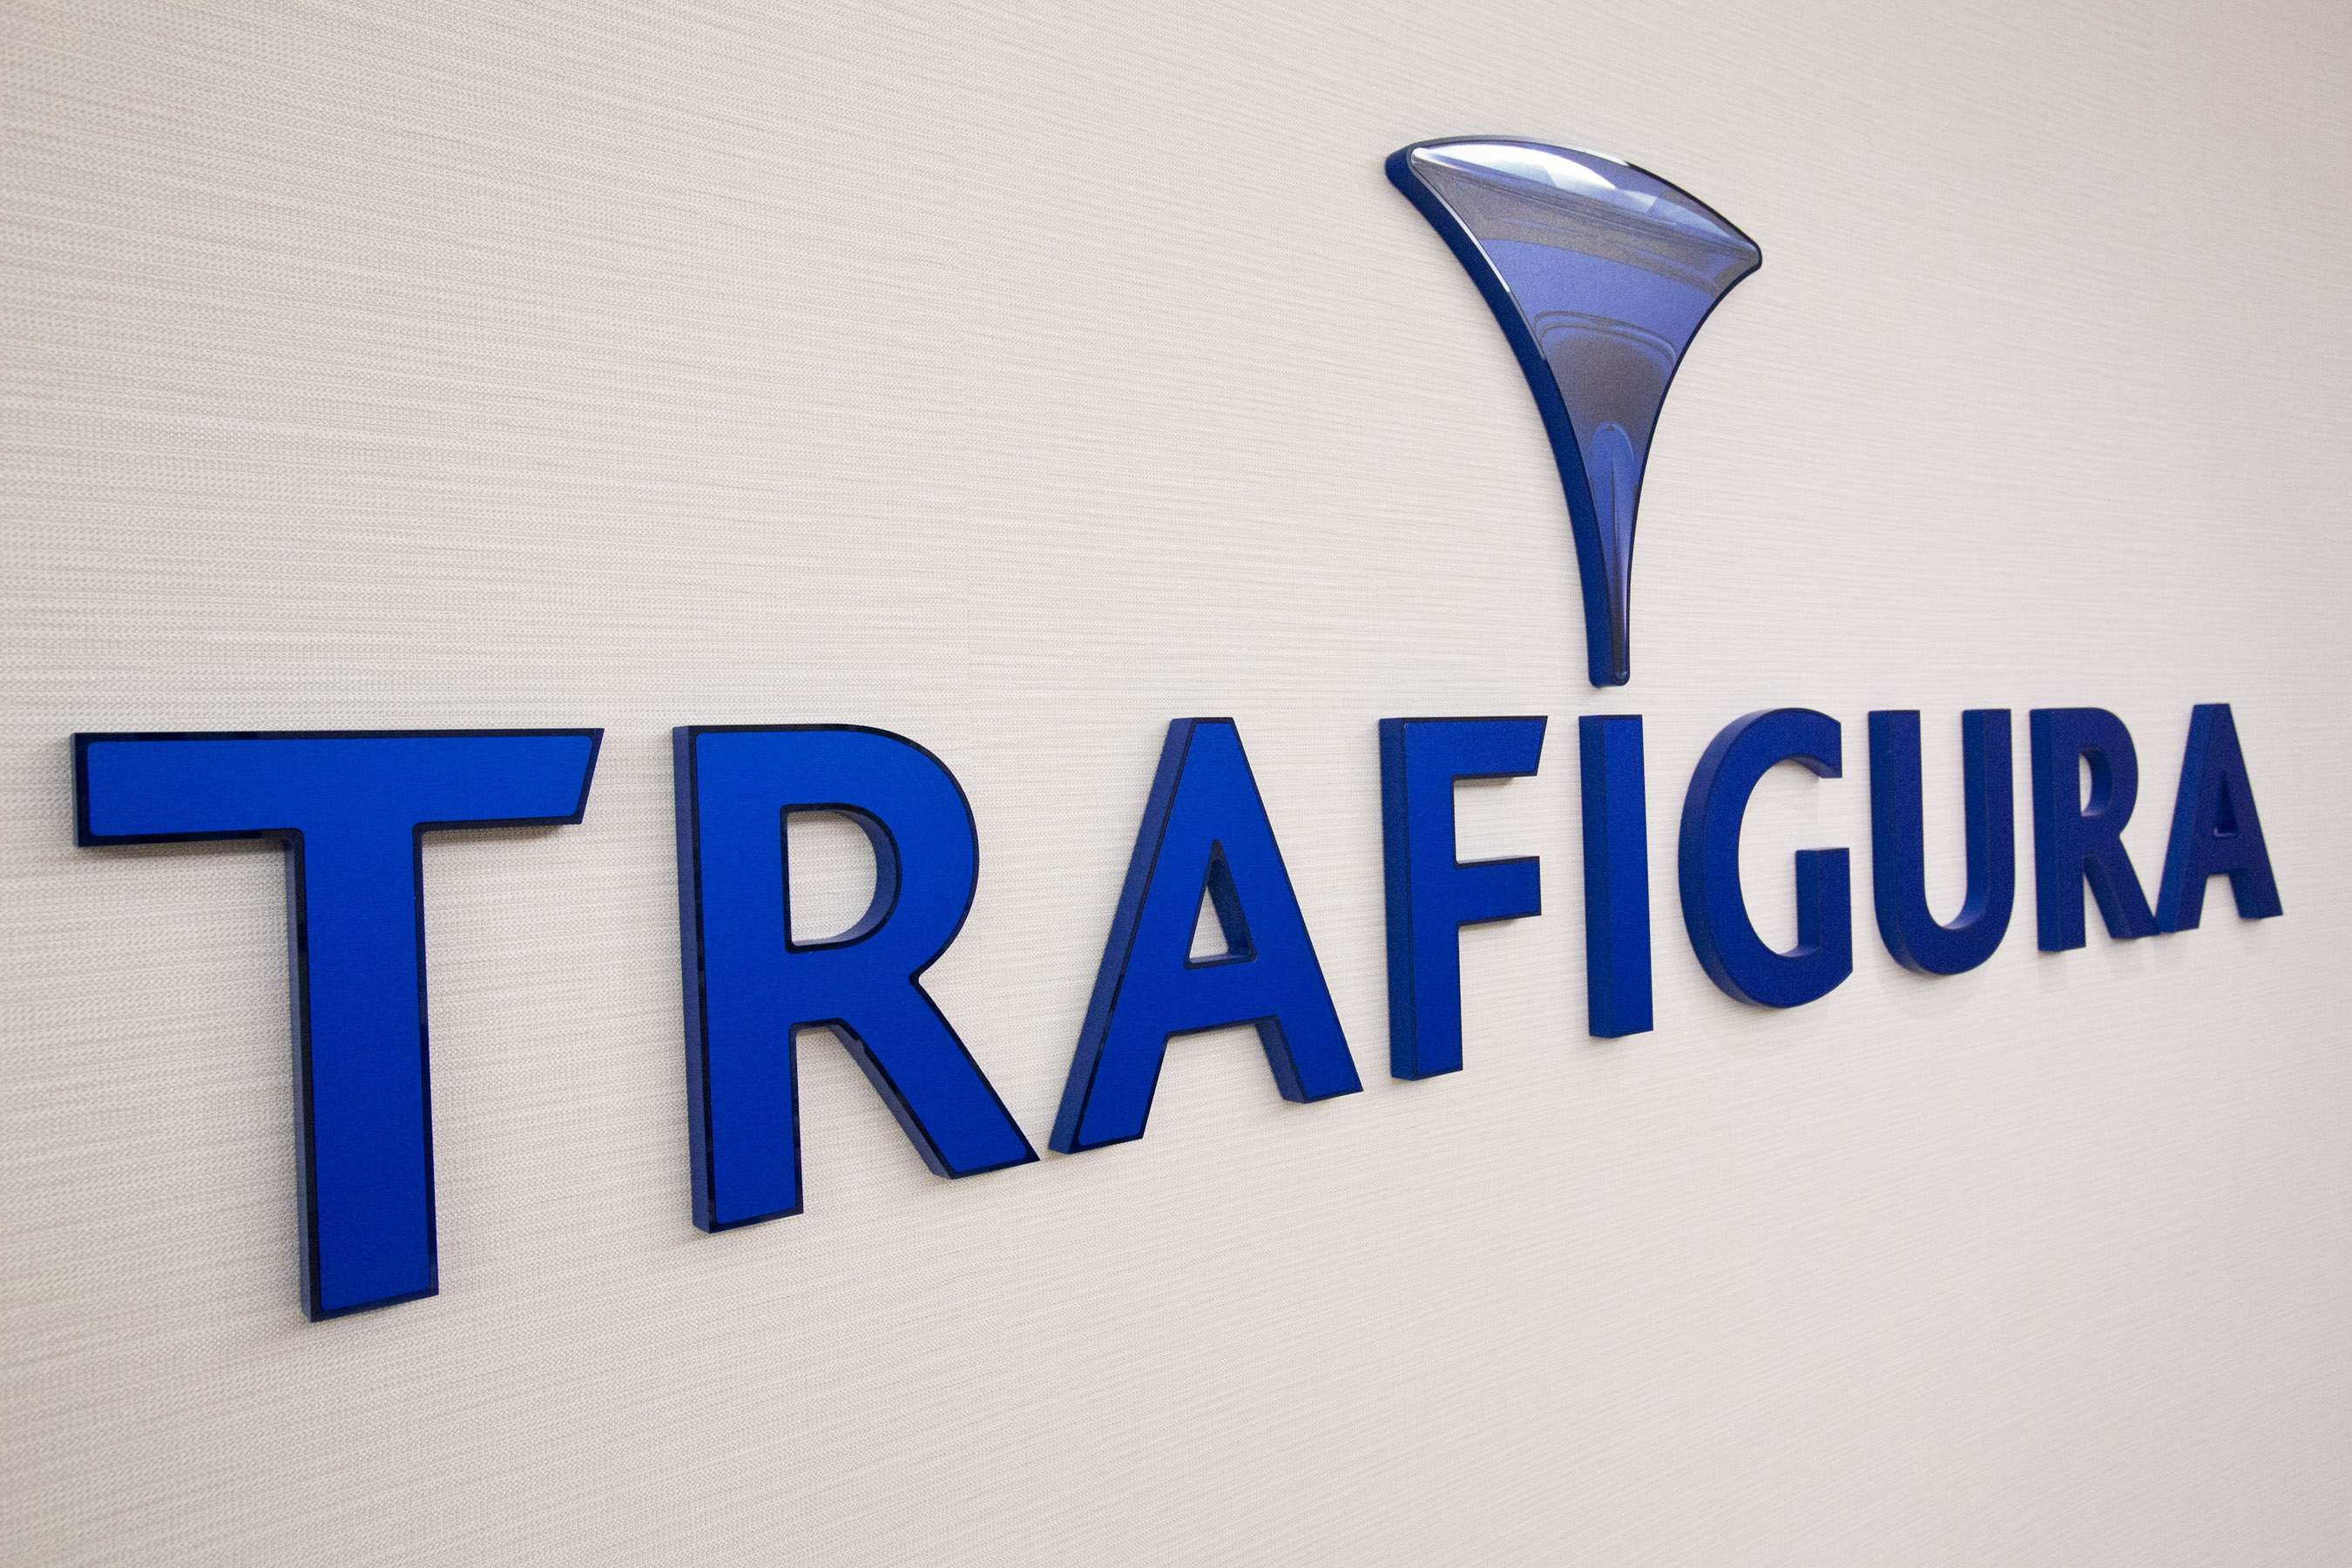 Yet Another Trafigura Delay